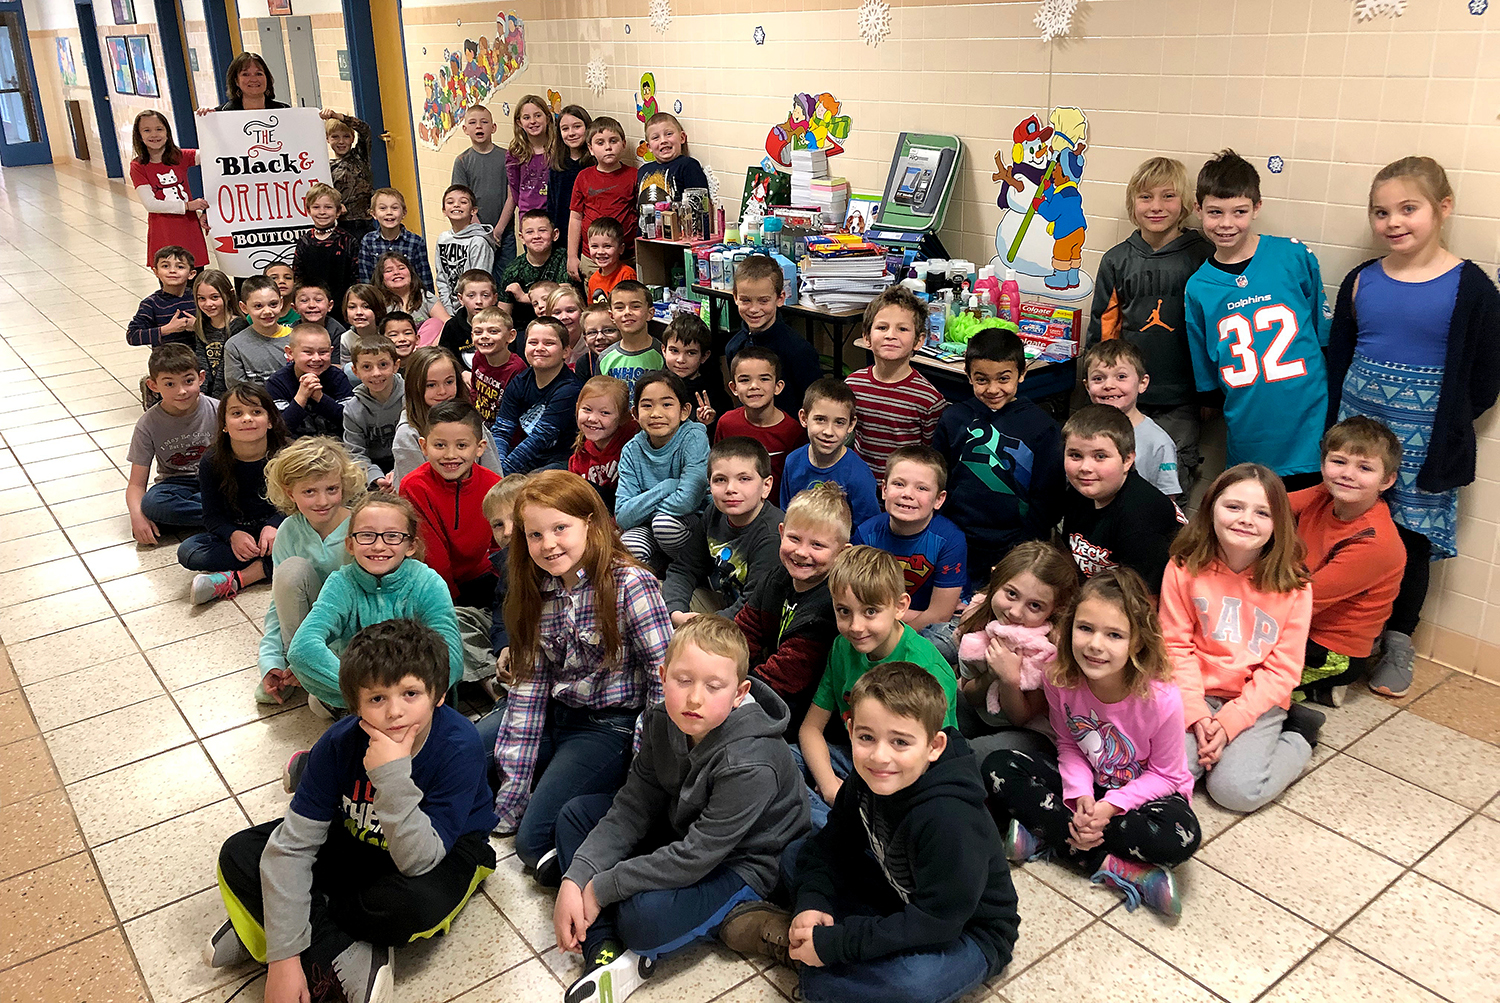 Second graders with their donations to the Black and Orange Boutique